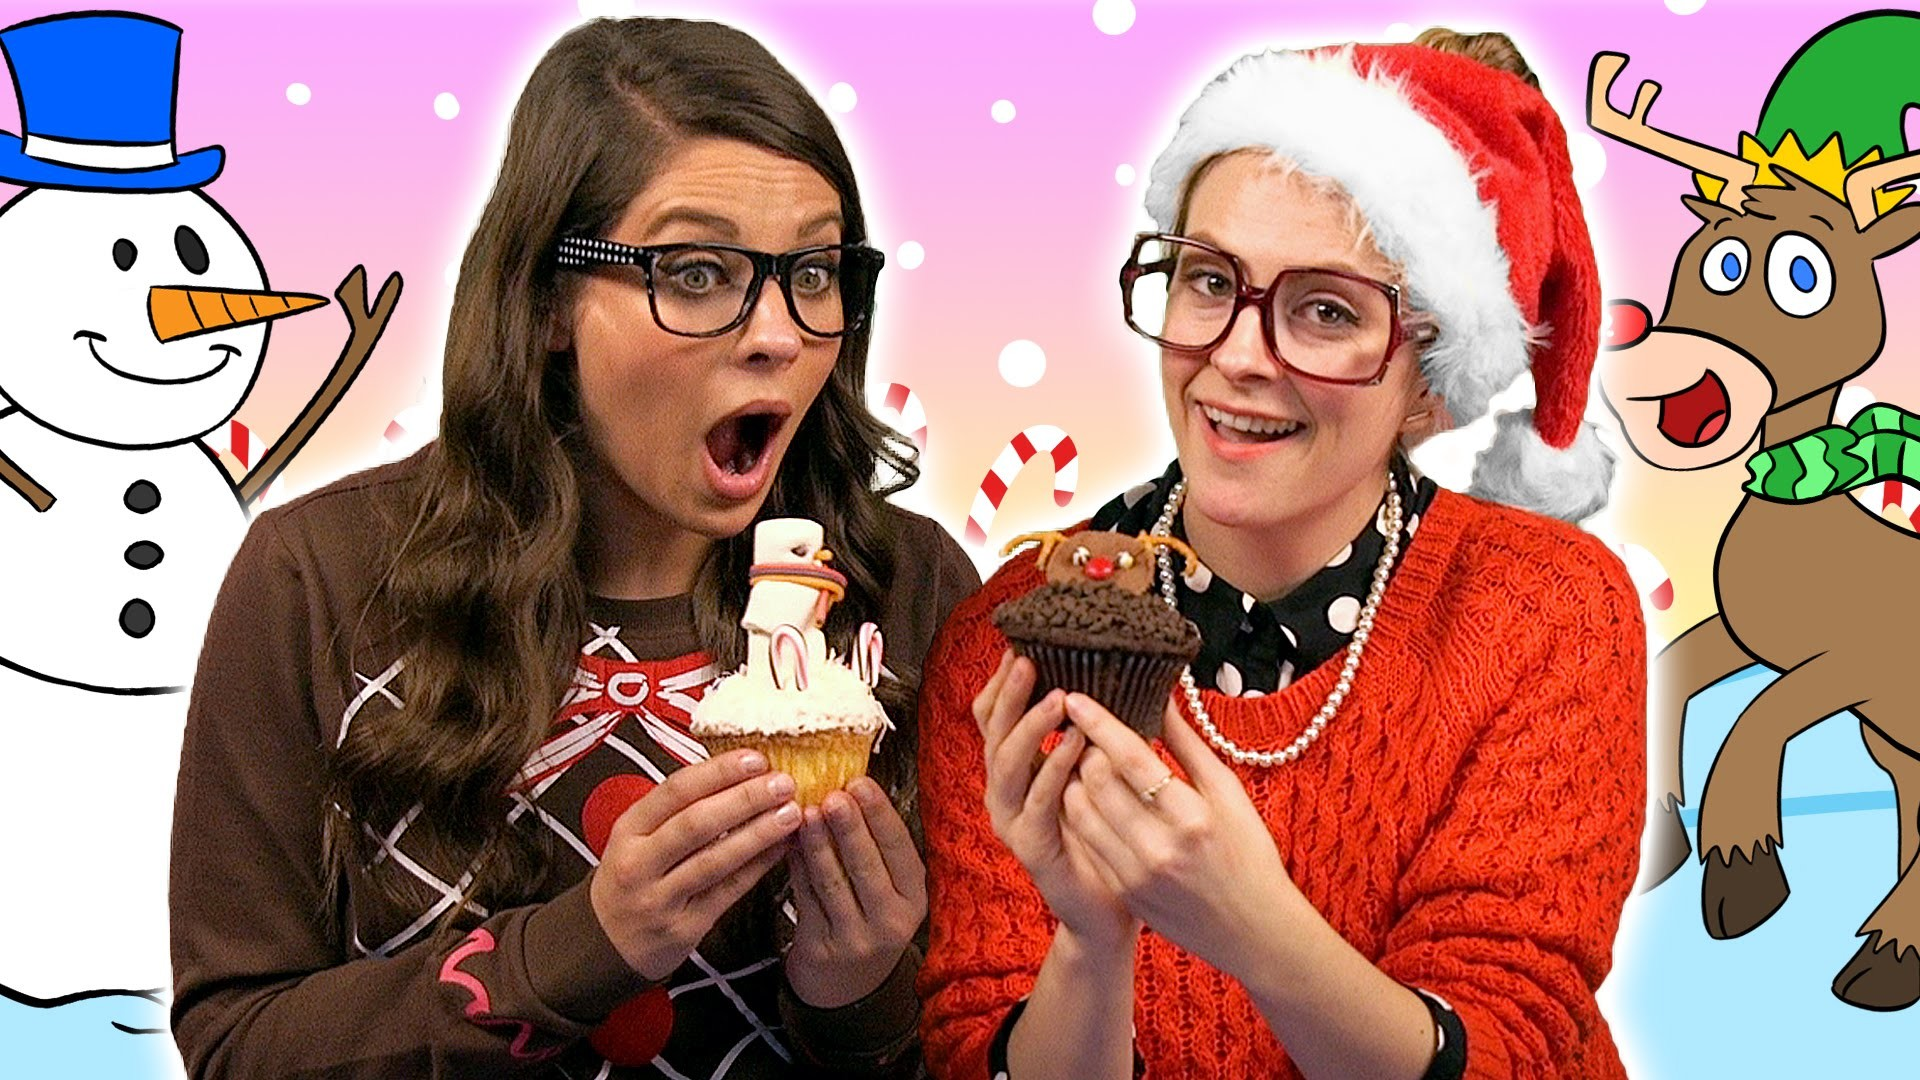 DIY Reindeer & Snowman Cupcakes - Edible Craft | A Cool School Craft with Crafty Carol & Ms. Booksy